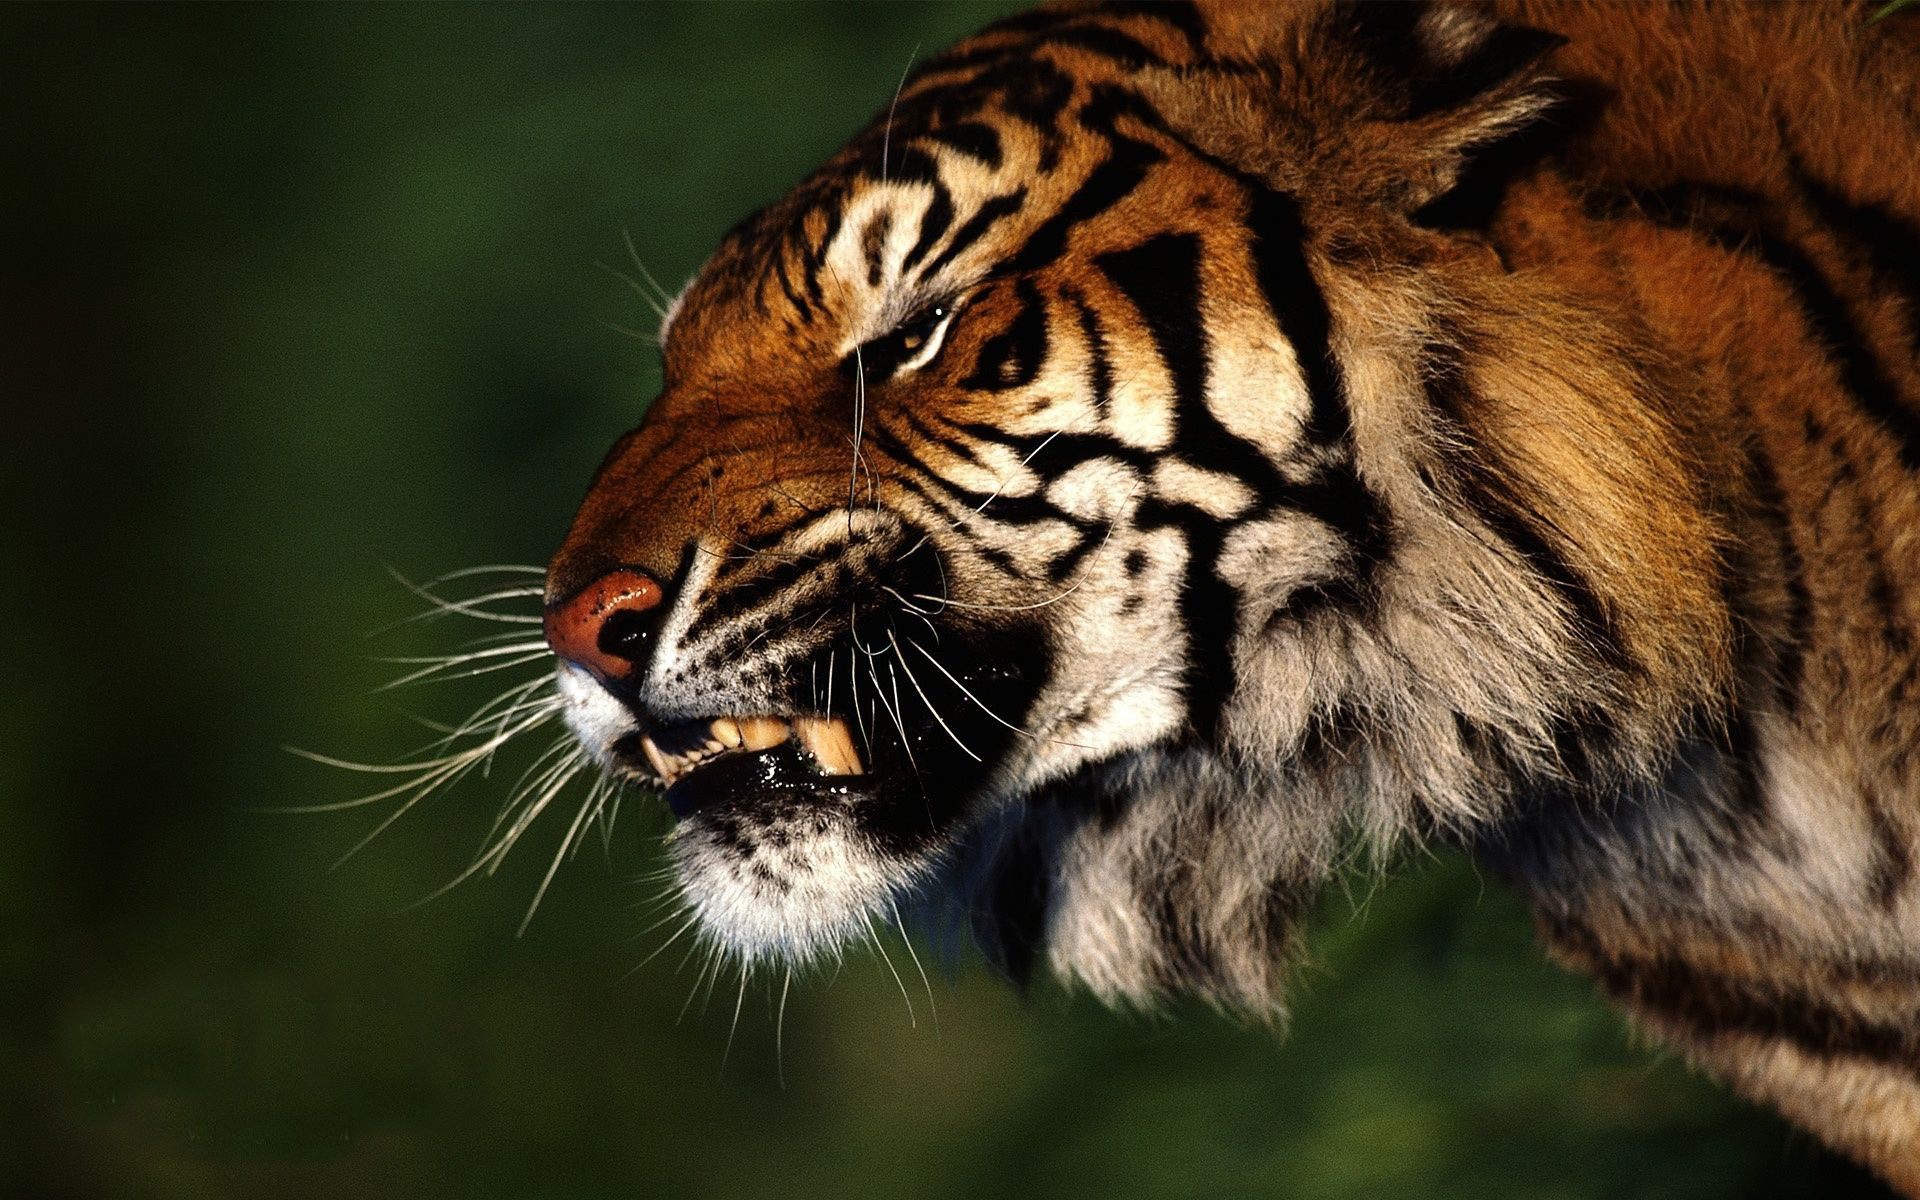 angry tiger wallpapers download